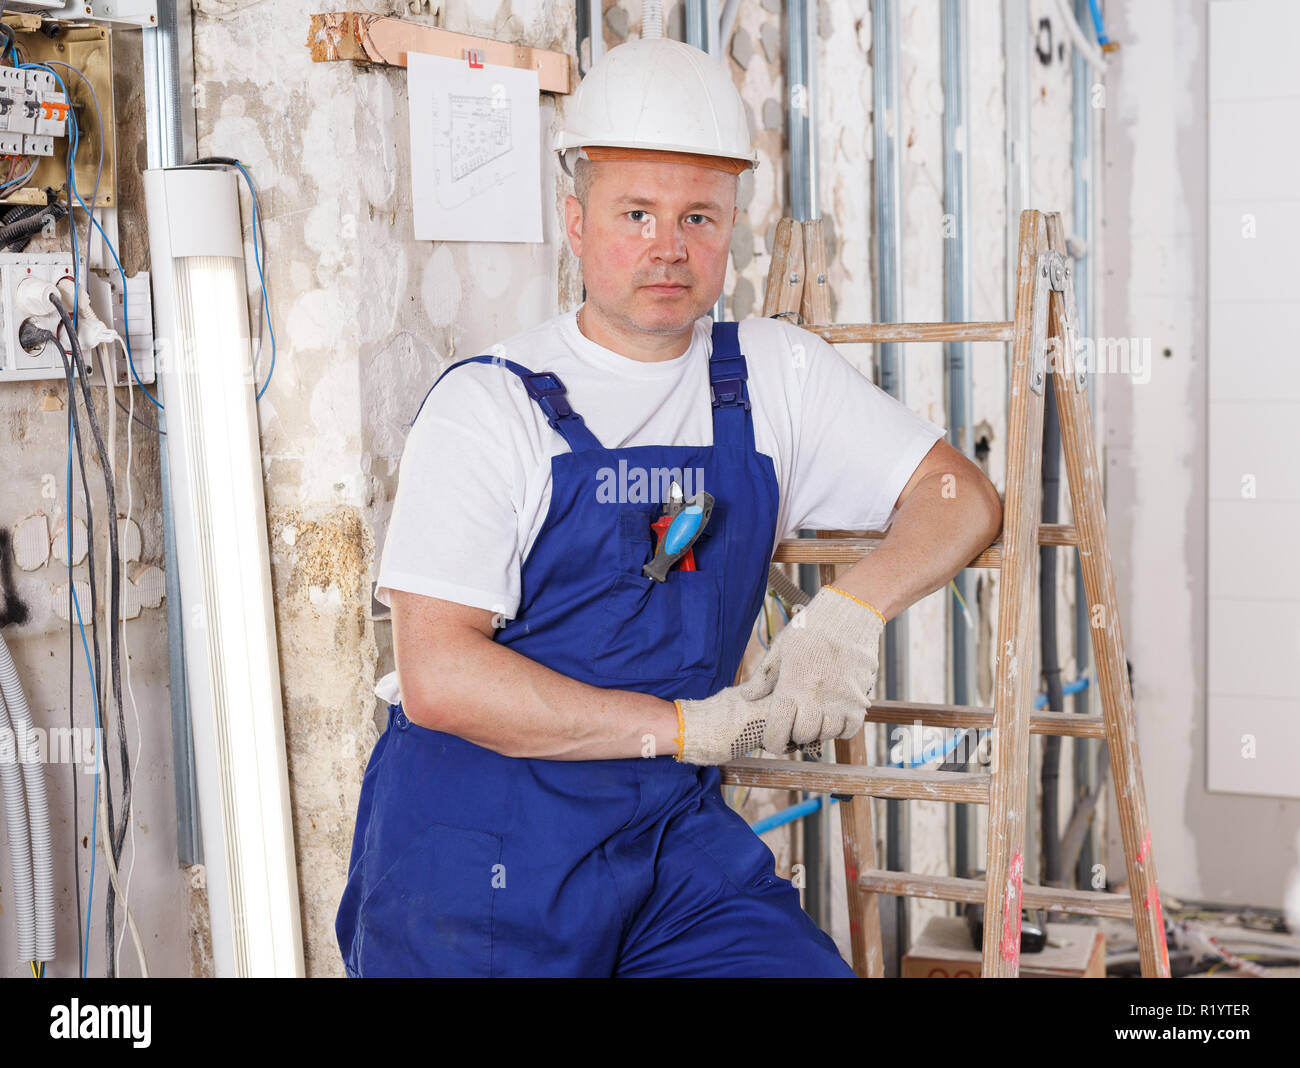 Portrait of confident professional builder posing in repairable room Stock Photo